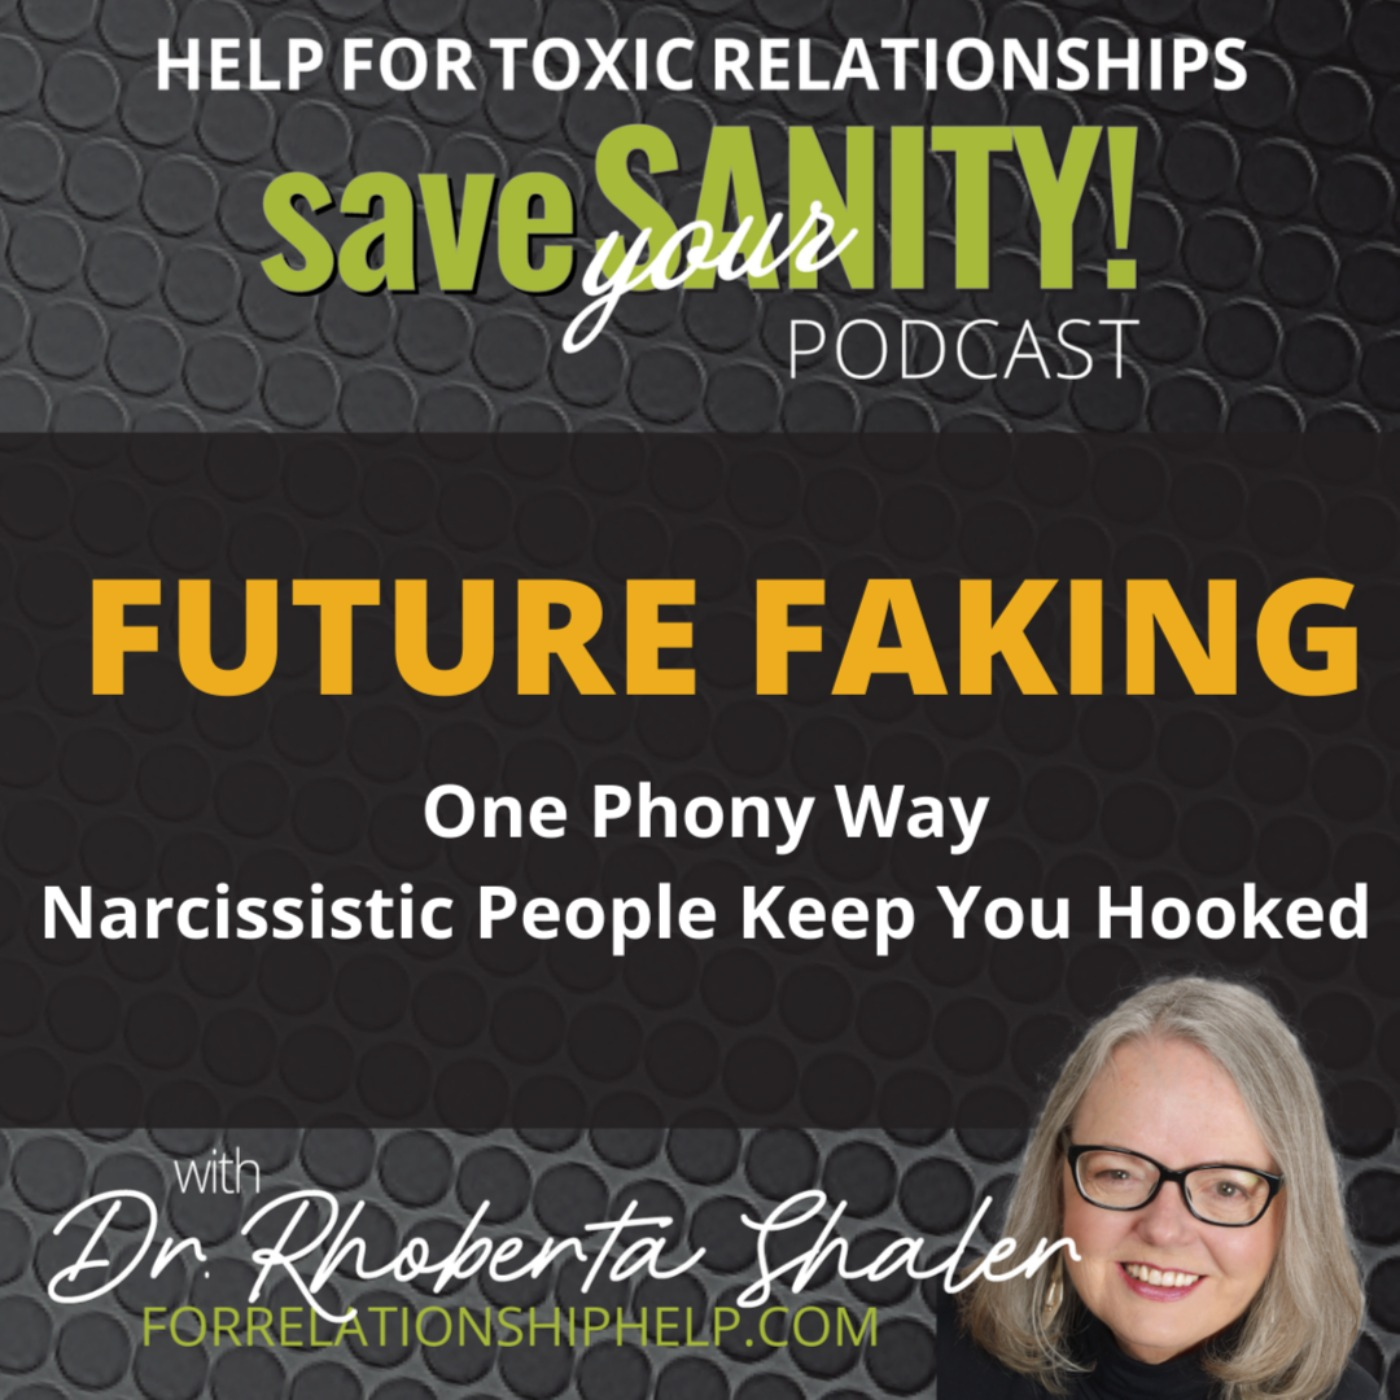 episode topic is future faking - the ways narcissists keep you hooked by promising futures you'll never have